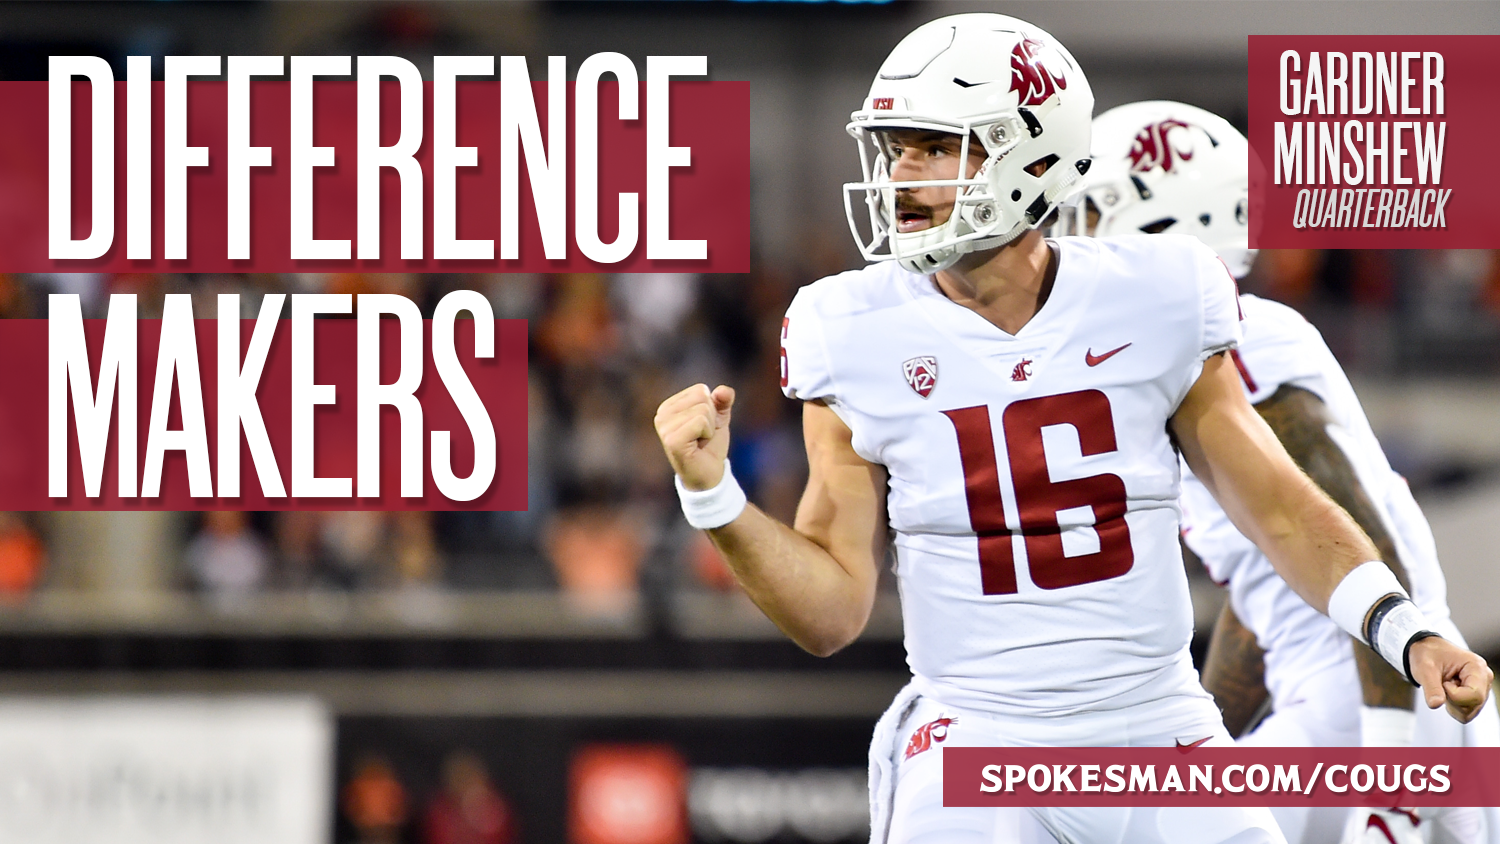 Difference makers: Gardner Minshew hits milestones in ...